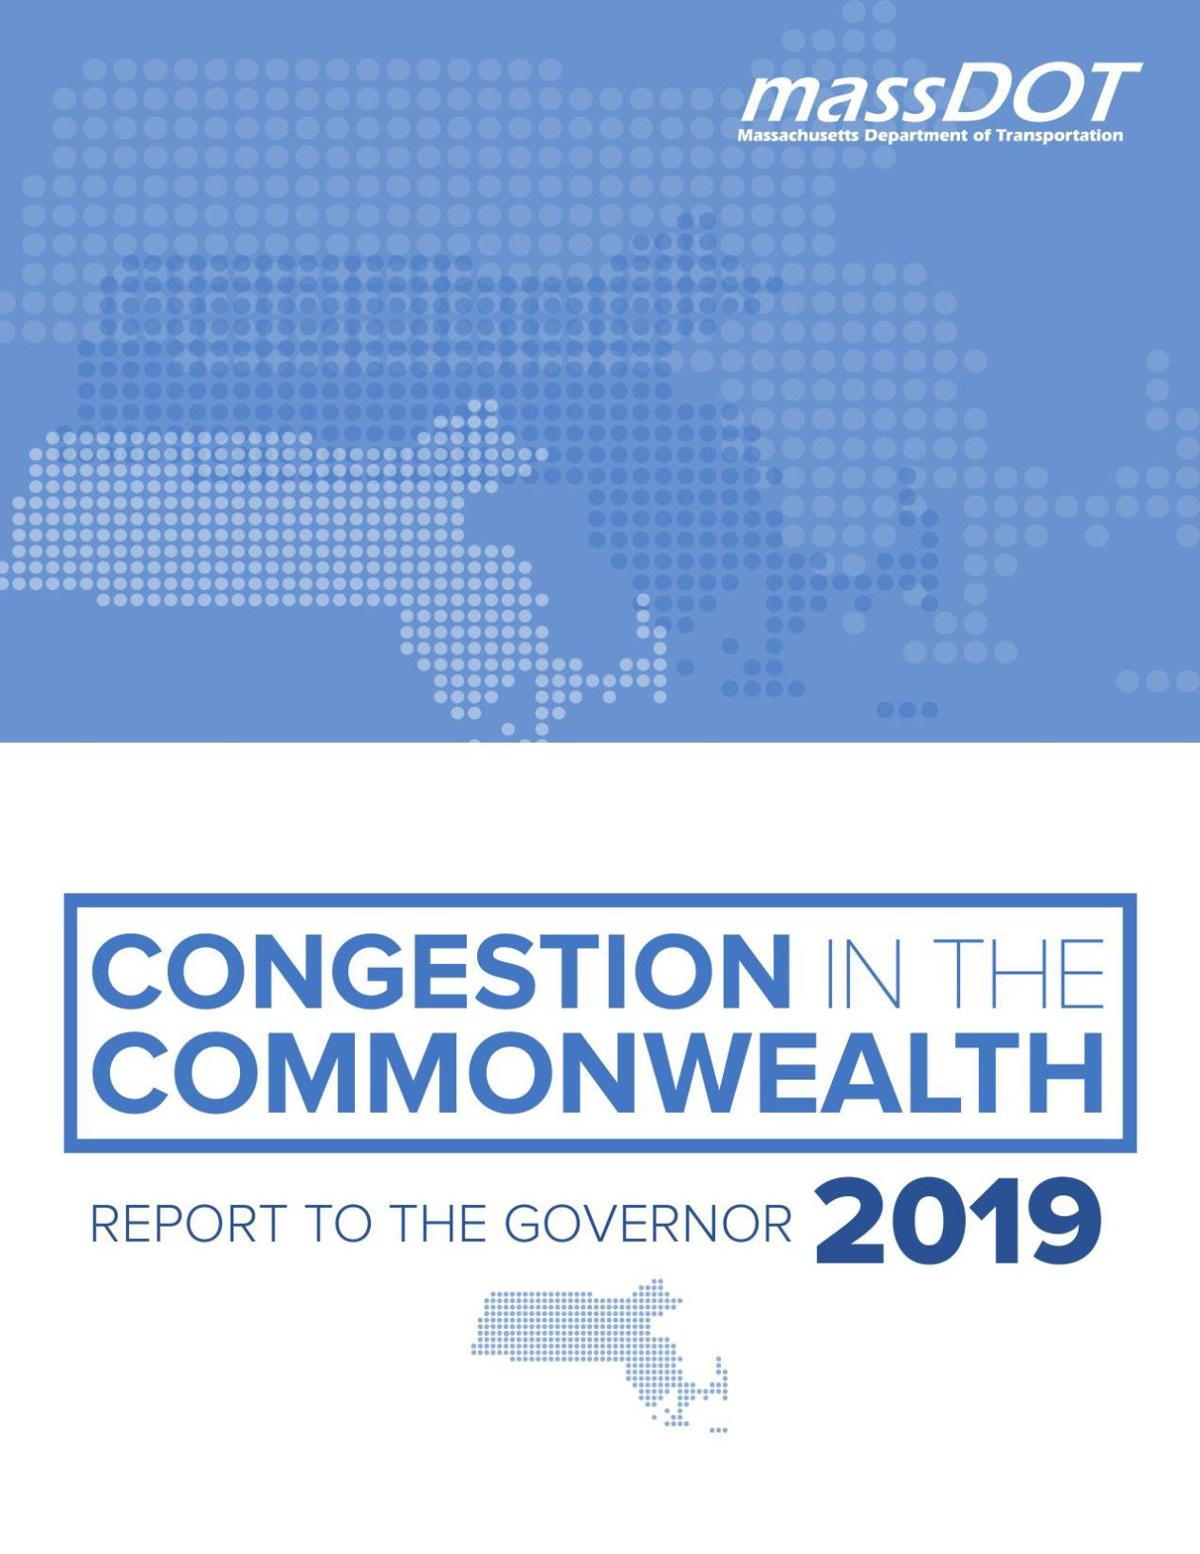 Congestion in the Commonwealth report 2019